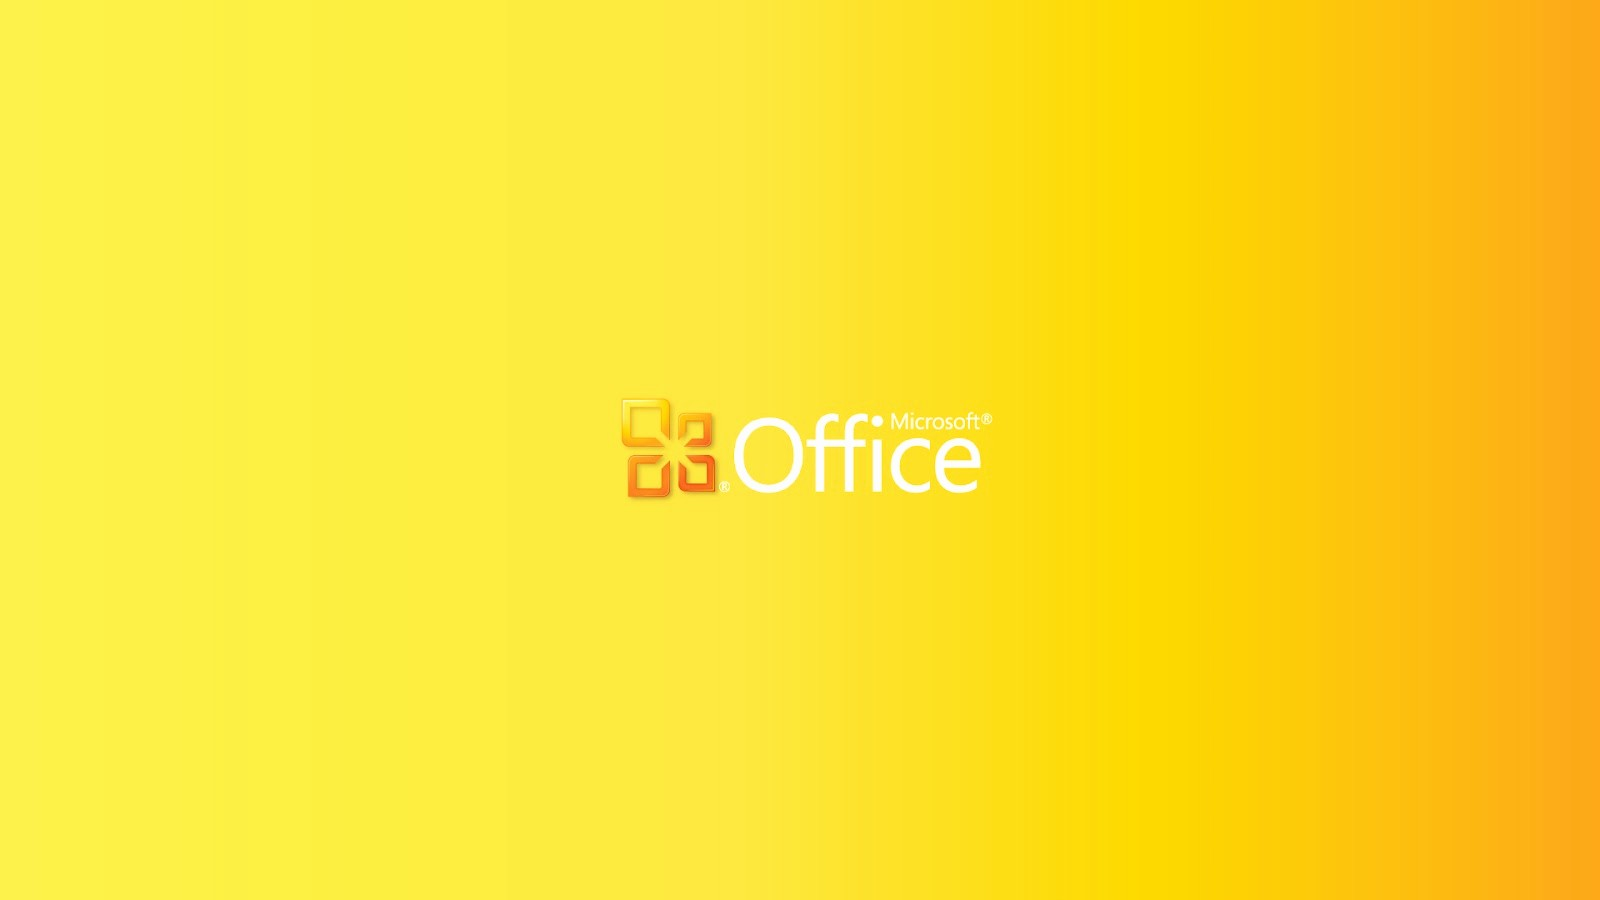 Office 2013 Background theme Download Lovely Microsoft Fice Desktop Wallpaper Wallpapersafari